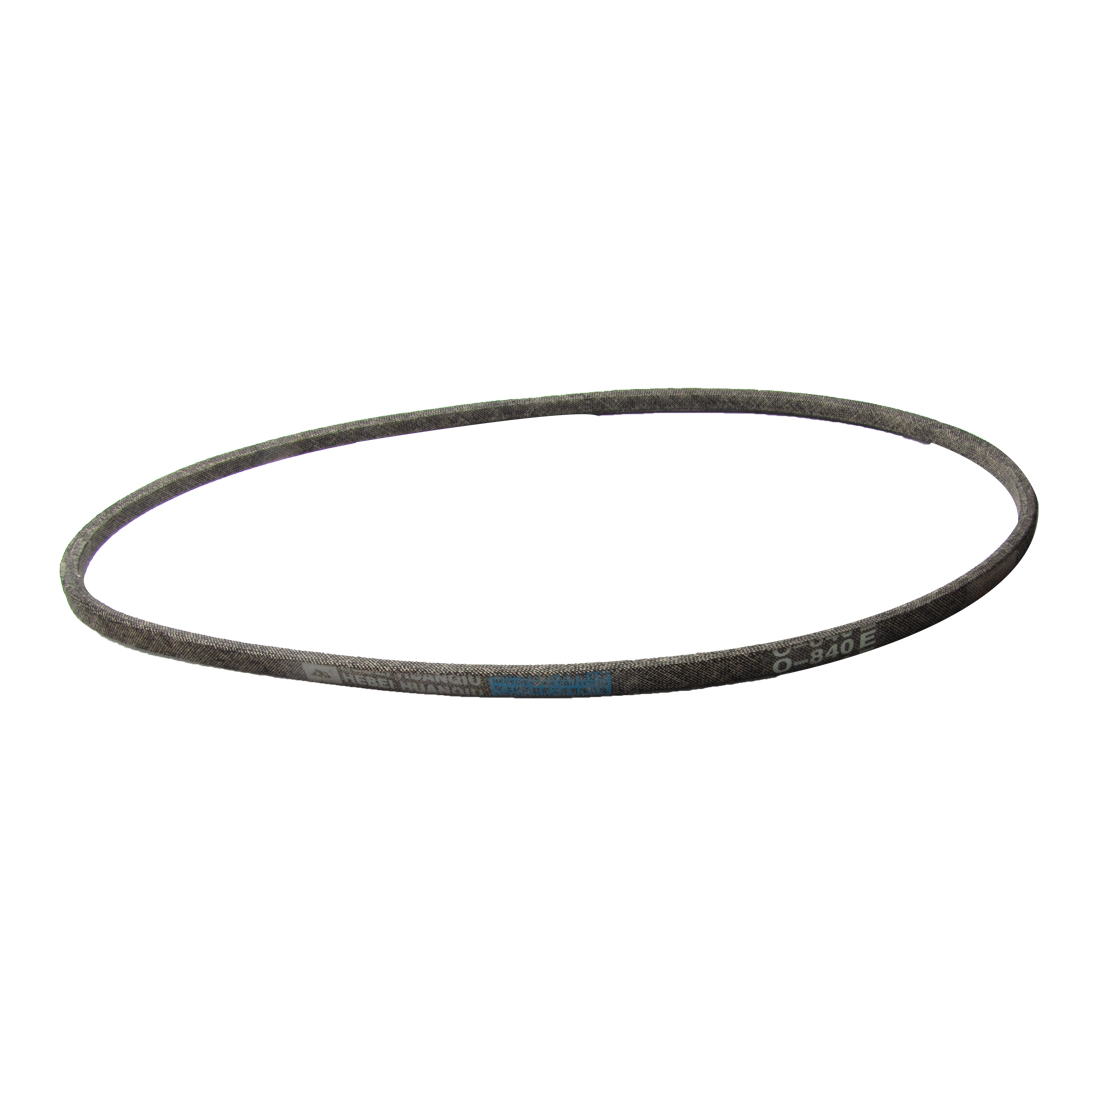 Washing Machine Repair Part 6mm Inner Width 5mm Thickness O-840E Rubber Belt